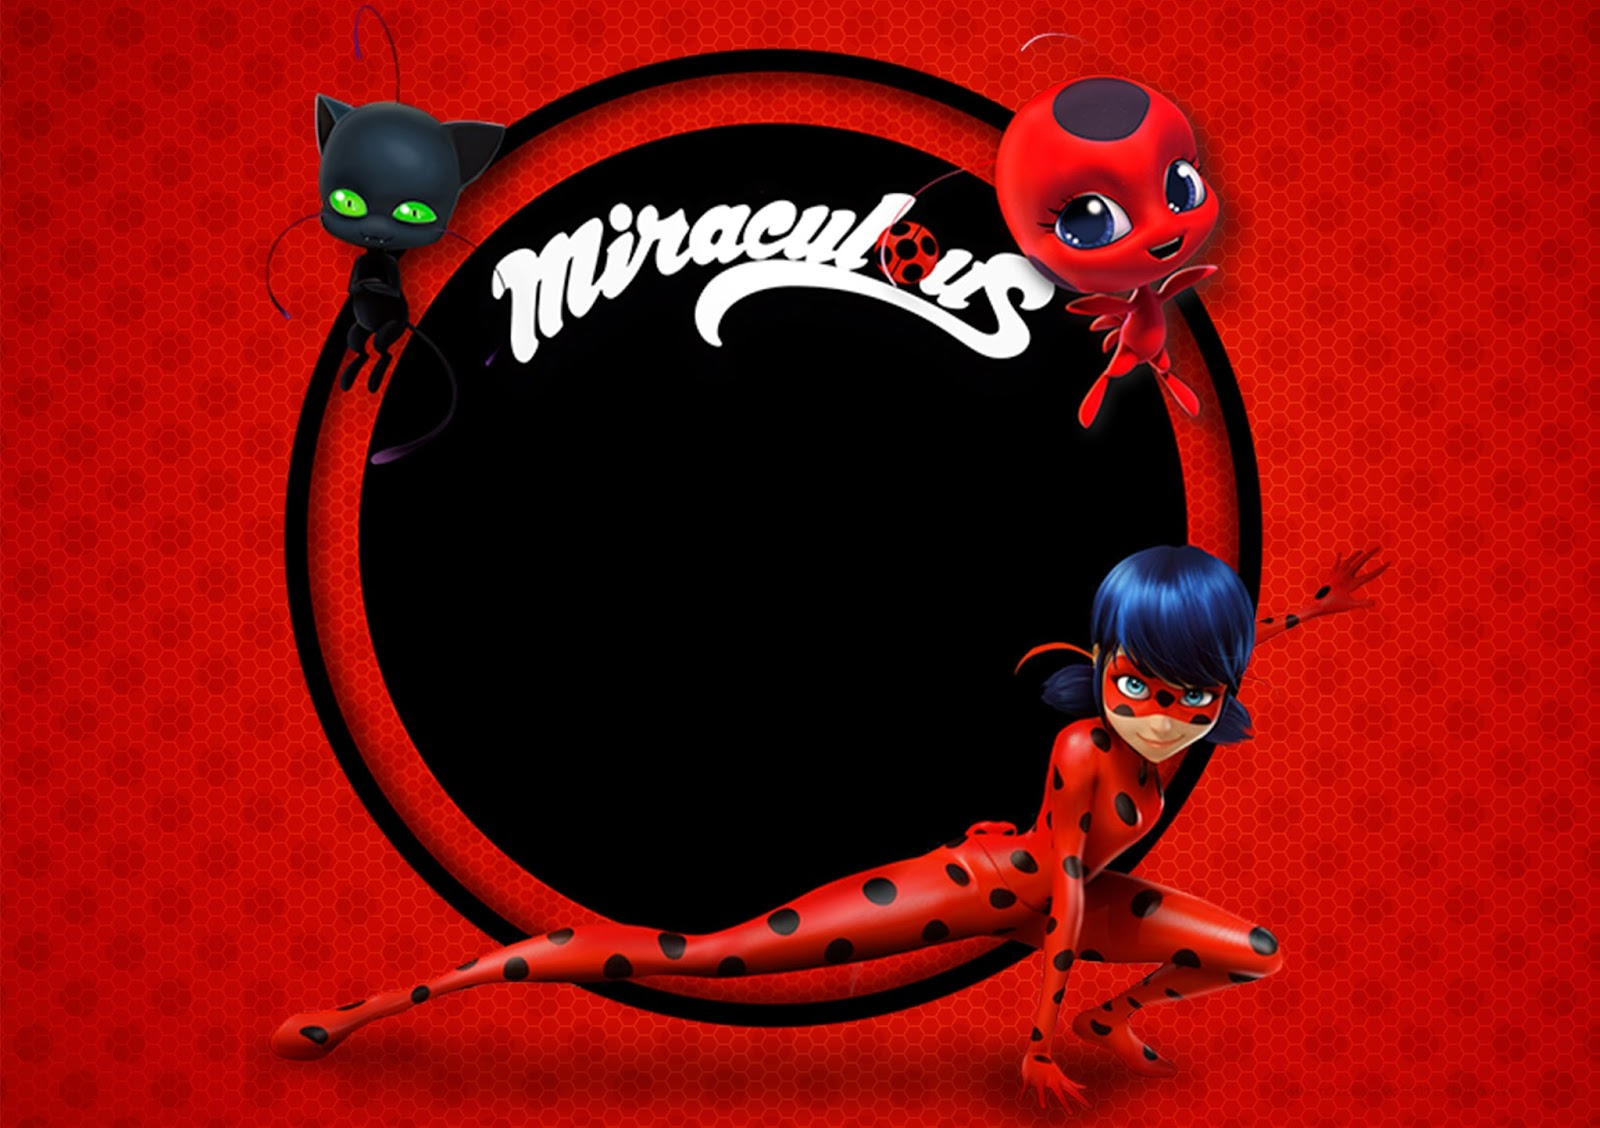 Candy Wall Stickers Miraculous Ladybug Free Printable Invitations Oh My